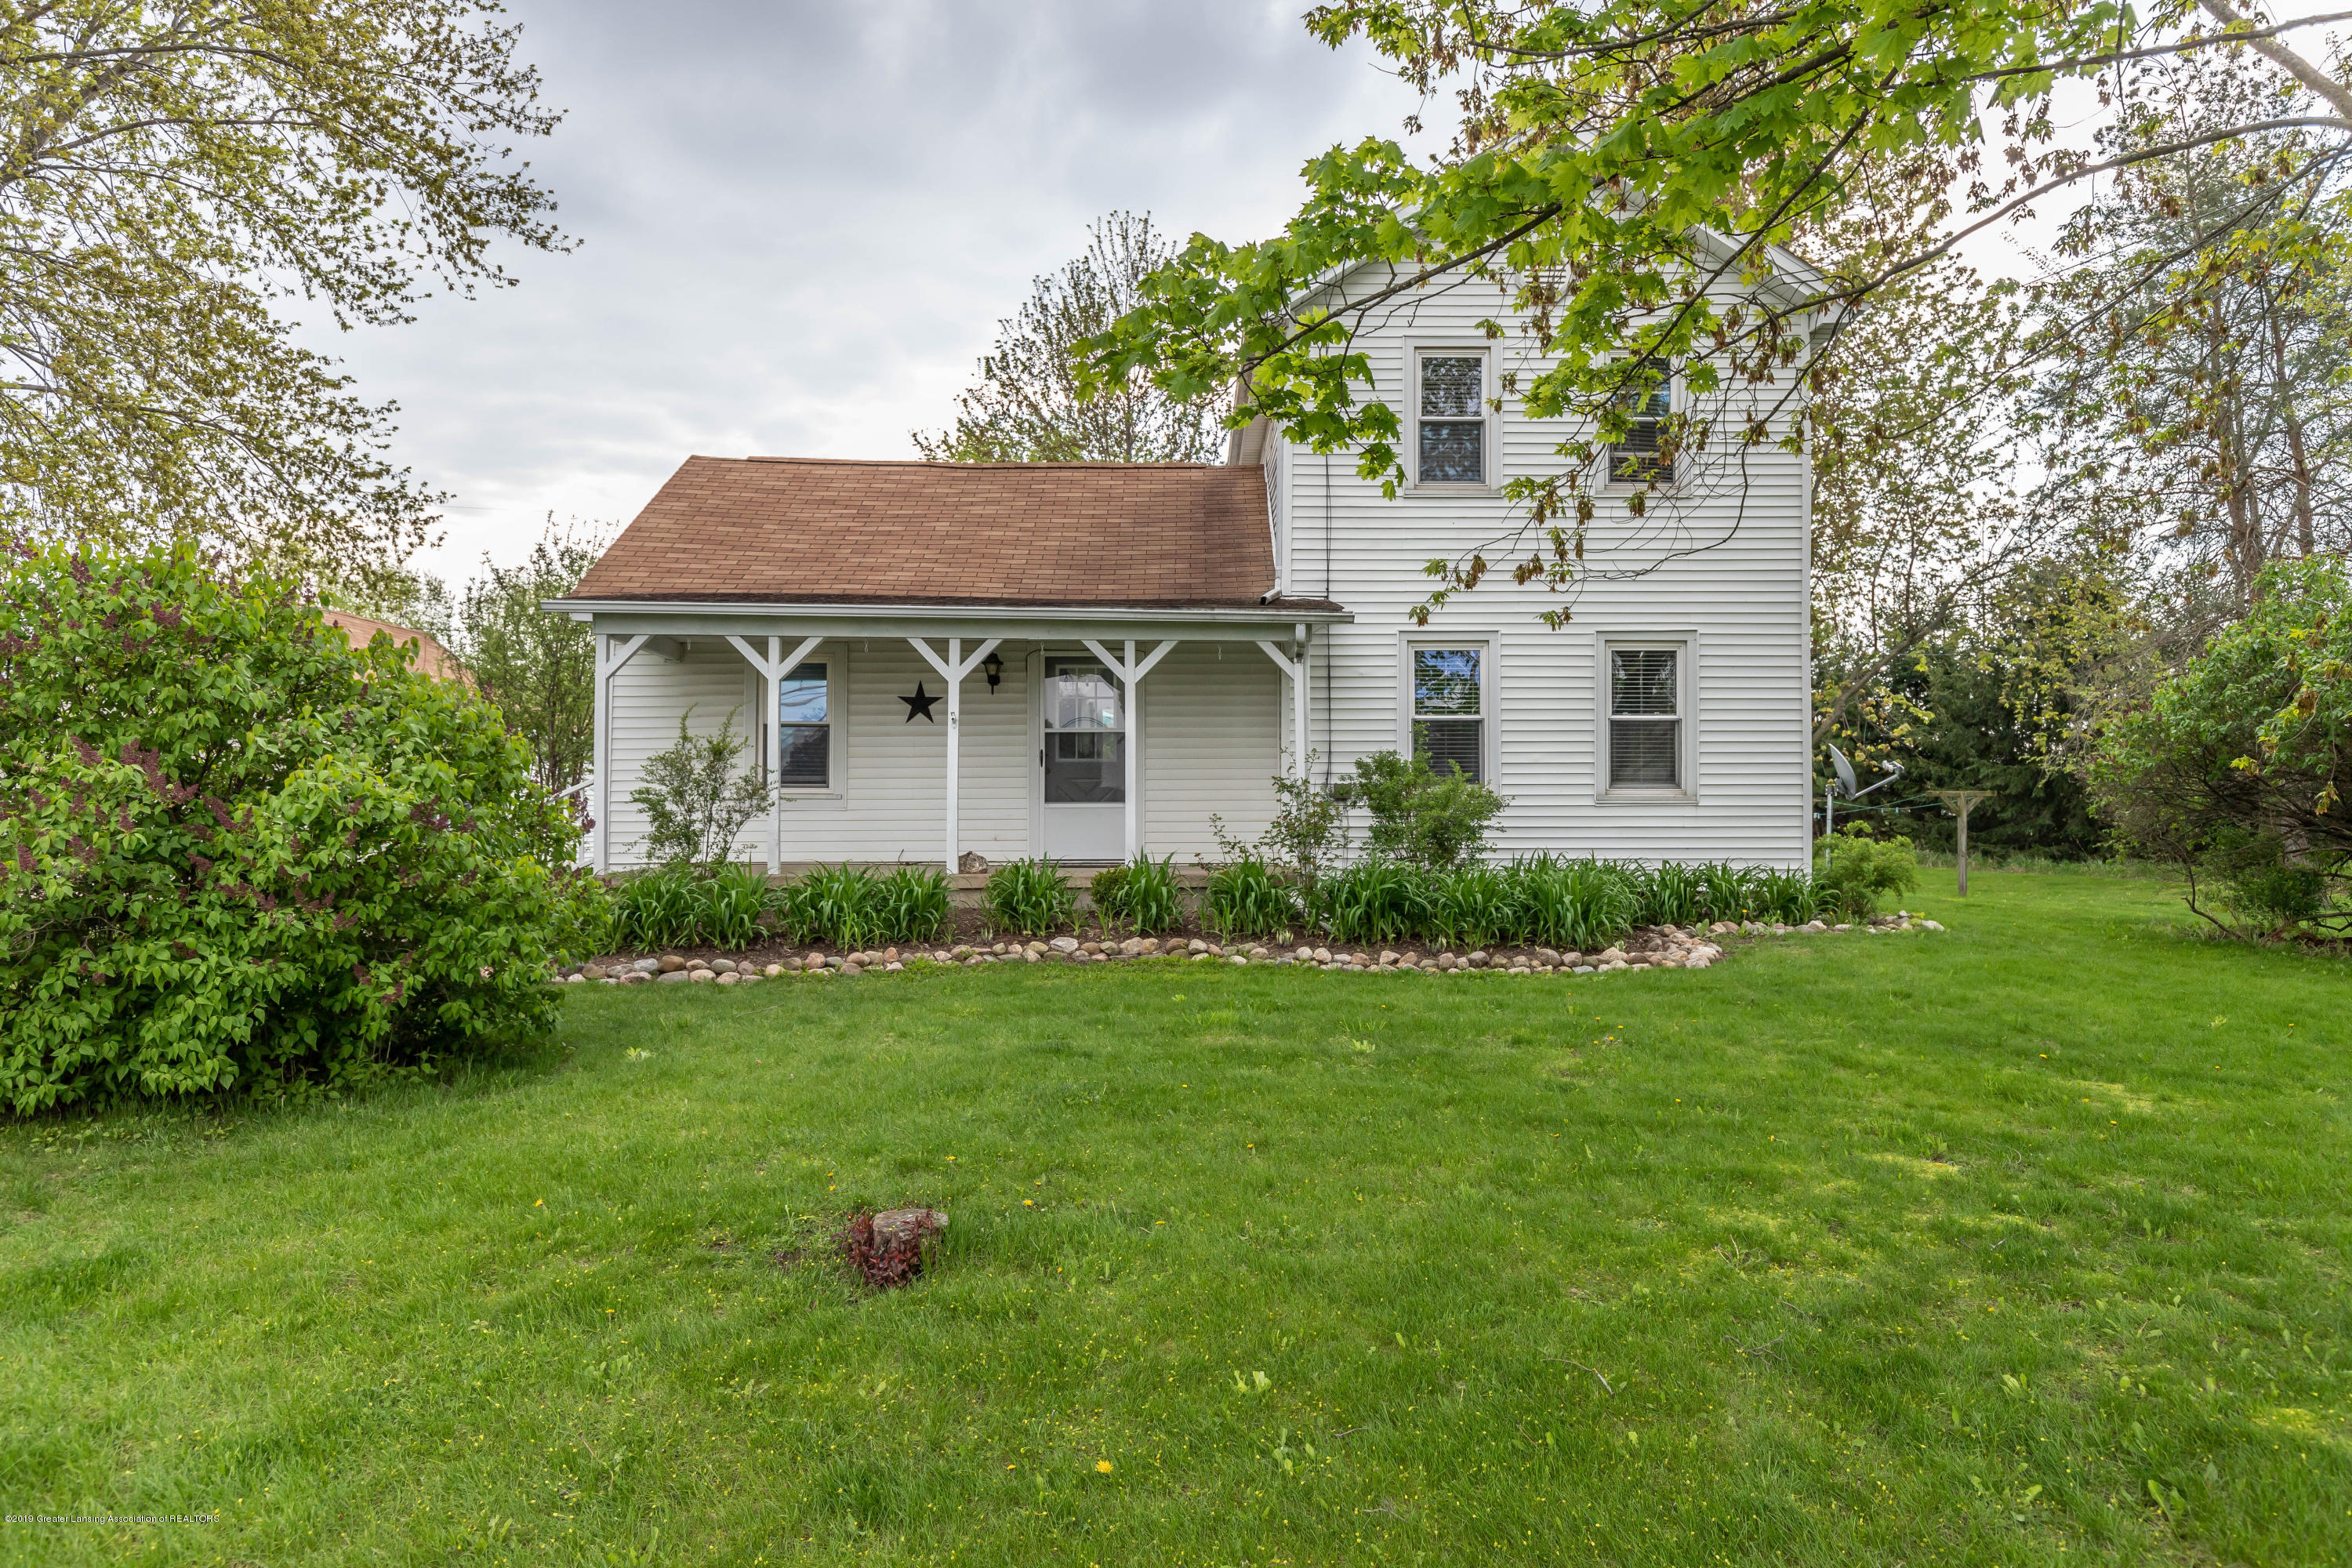 3611 County Farm Rd - countryfront3 (1 of 1) - 1